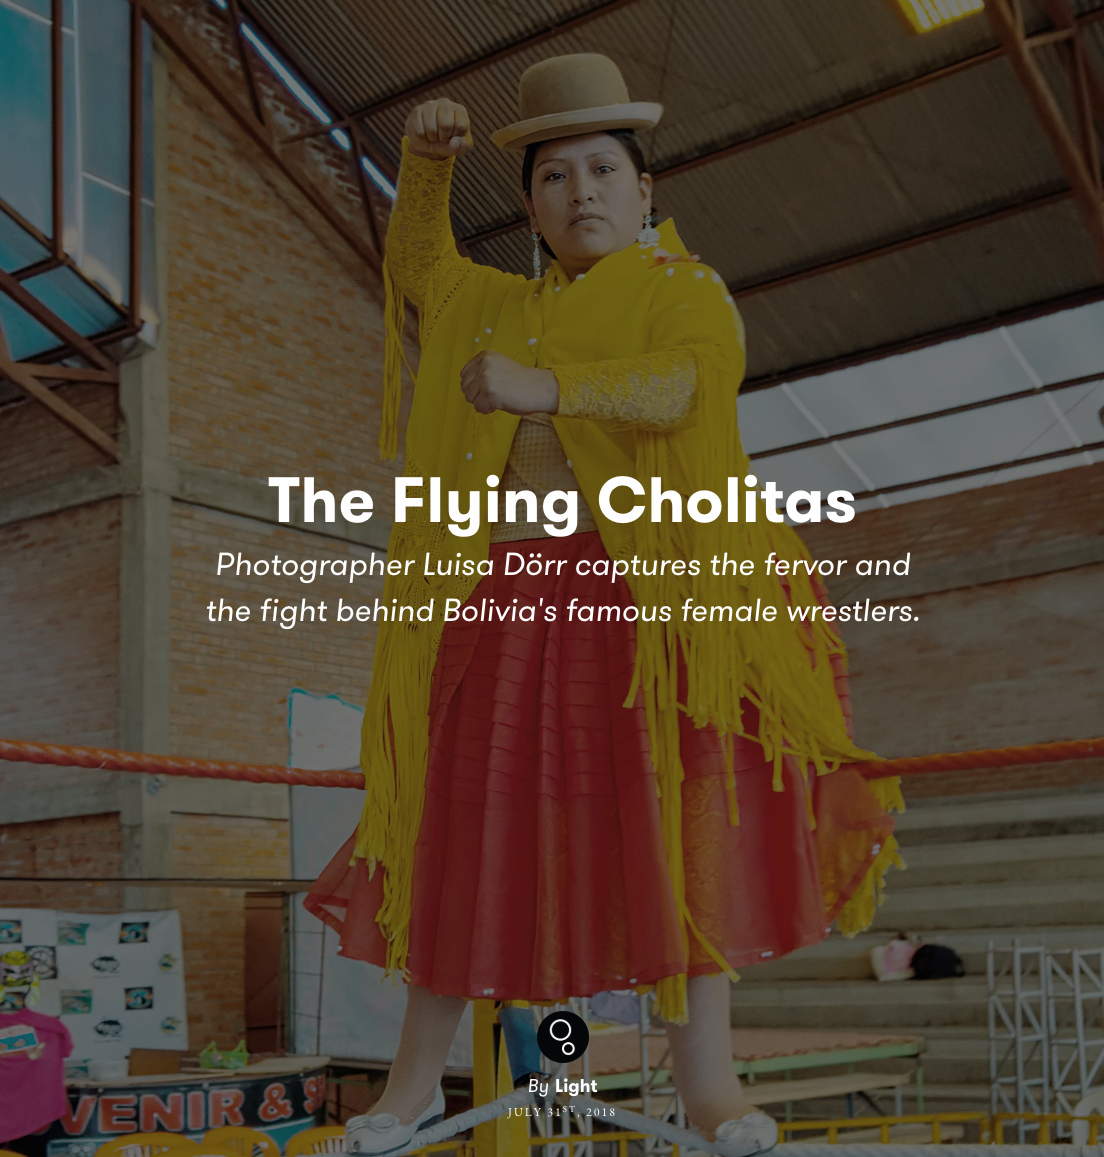 Photographer Luisa Dorr documents Bolivia's famous female wrestlers.